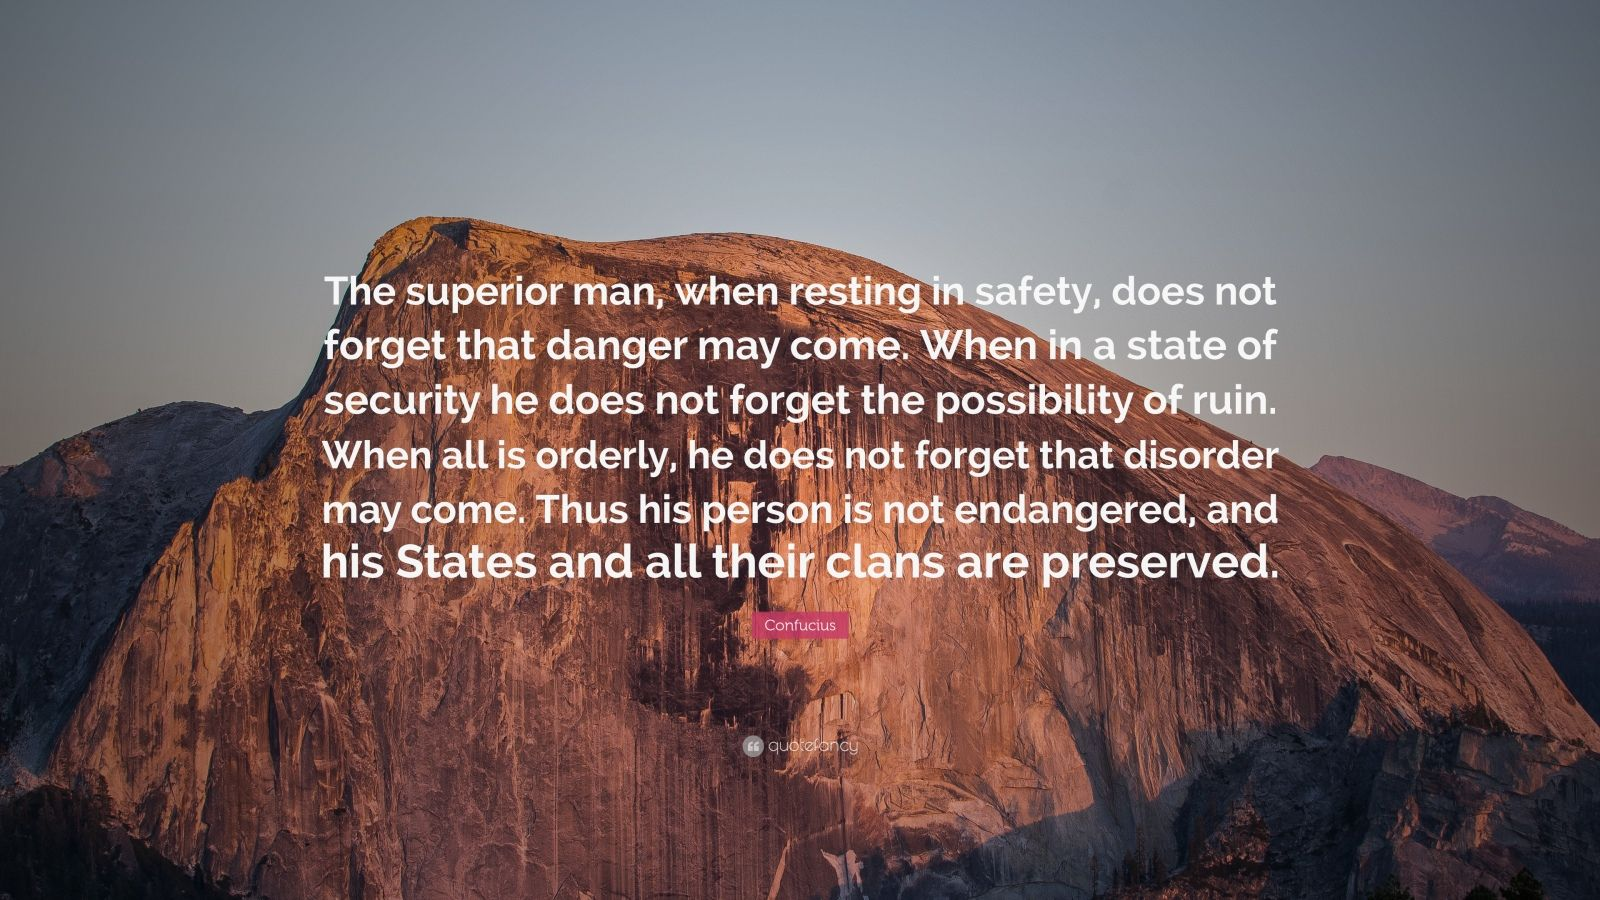 """Confucius Quote: """"The superior man, when resting in safety, does not forget that danger may come. When in a state of security he does not forget the possibility of ruin. When all is orderly, he does not forget that disorder may come. Thus his person is not endangered, and his States and all their clans are preserved."""""""